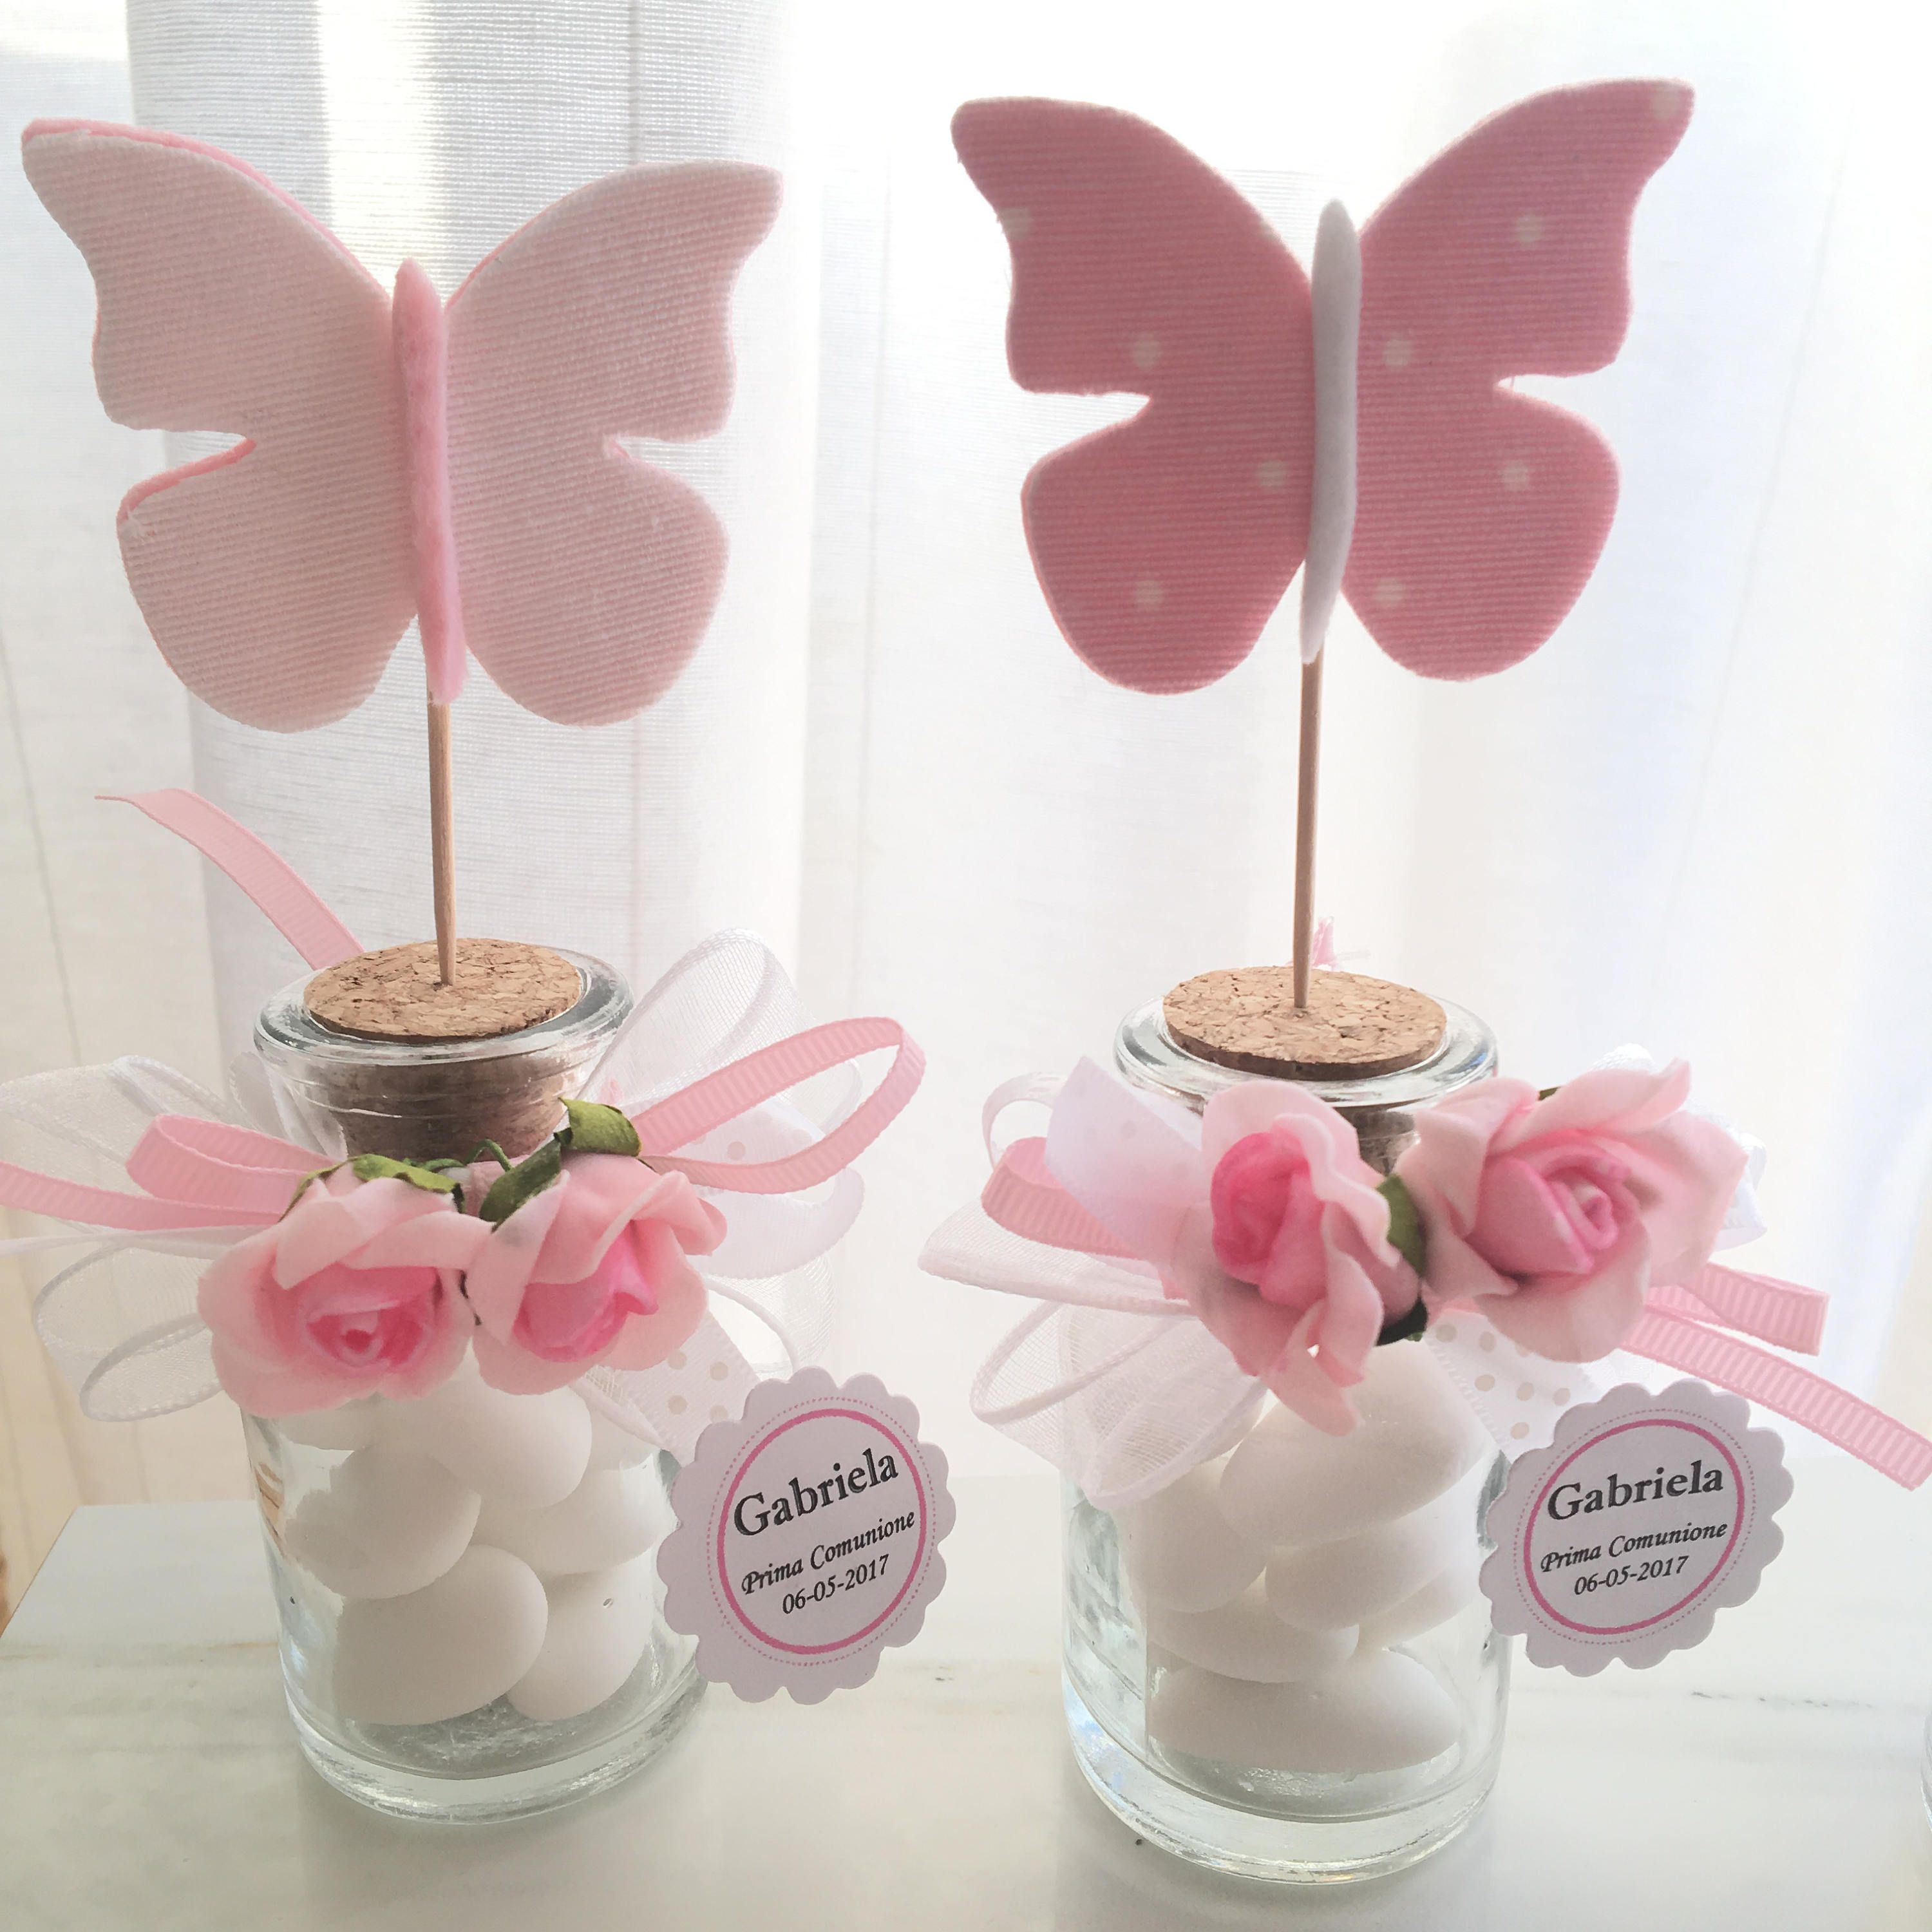 Personalized Favor For Girl S Communion Jar With Stopper And Felt And Fabric Butterfly Assorted Colors In Pink And White And Beige Shades Bomboniere Bomboniere Per Bambini Festa A Tema Farfalla